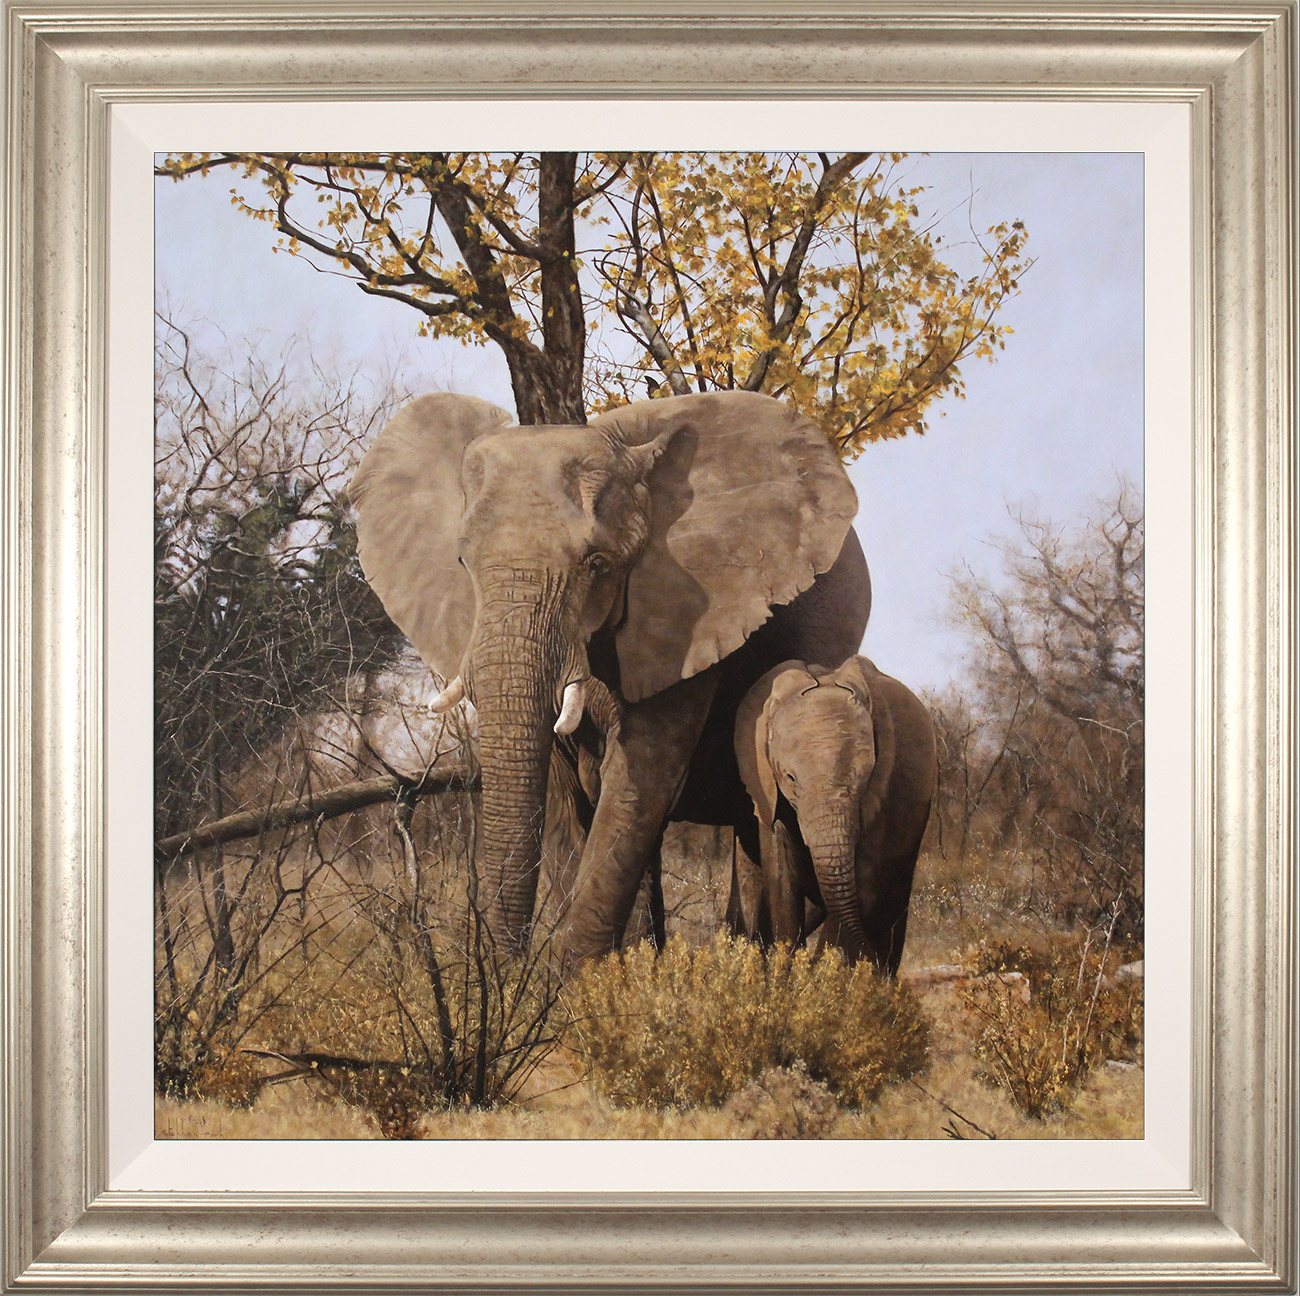 Stephen Park, Original oil painting on panel, Elephant Mother and Calf, click to enlarge